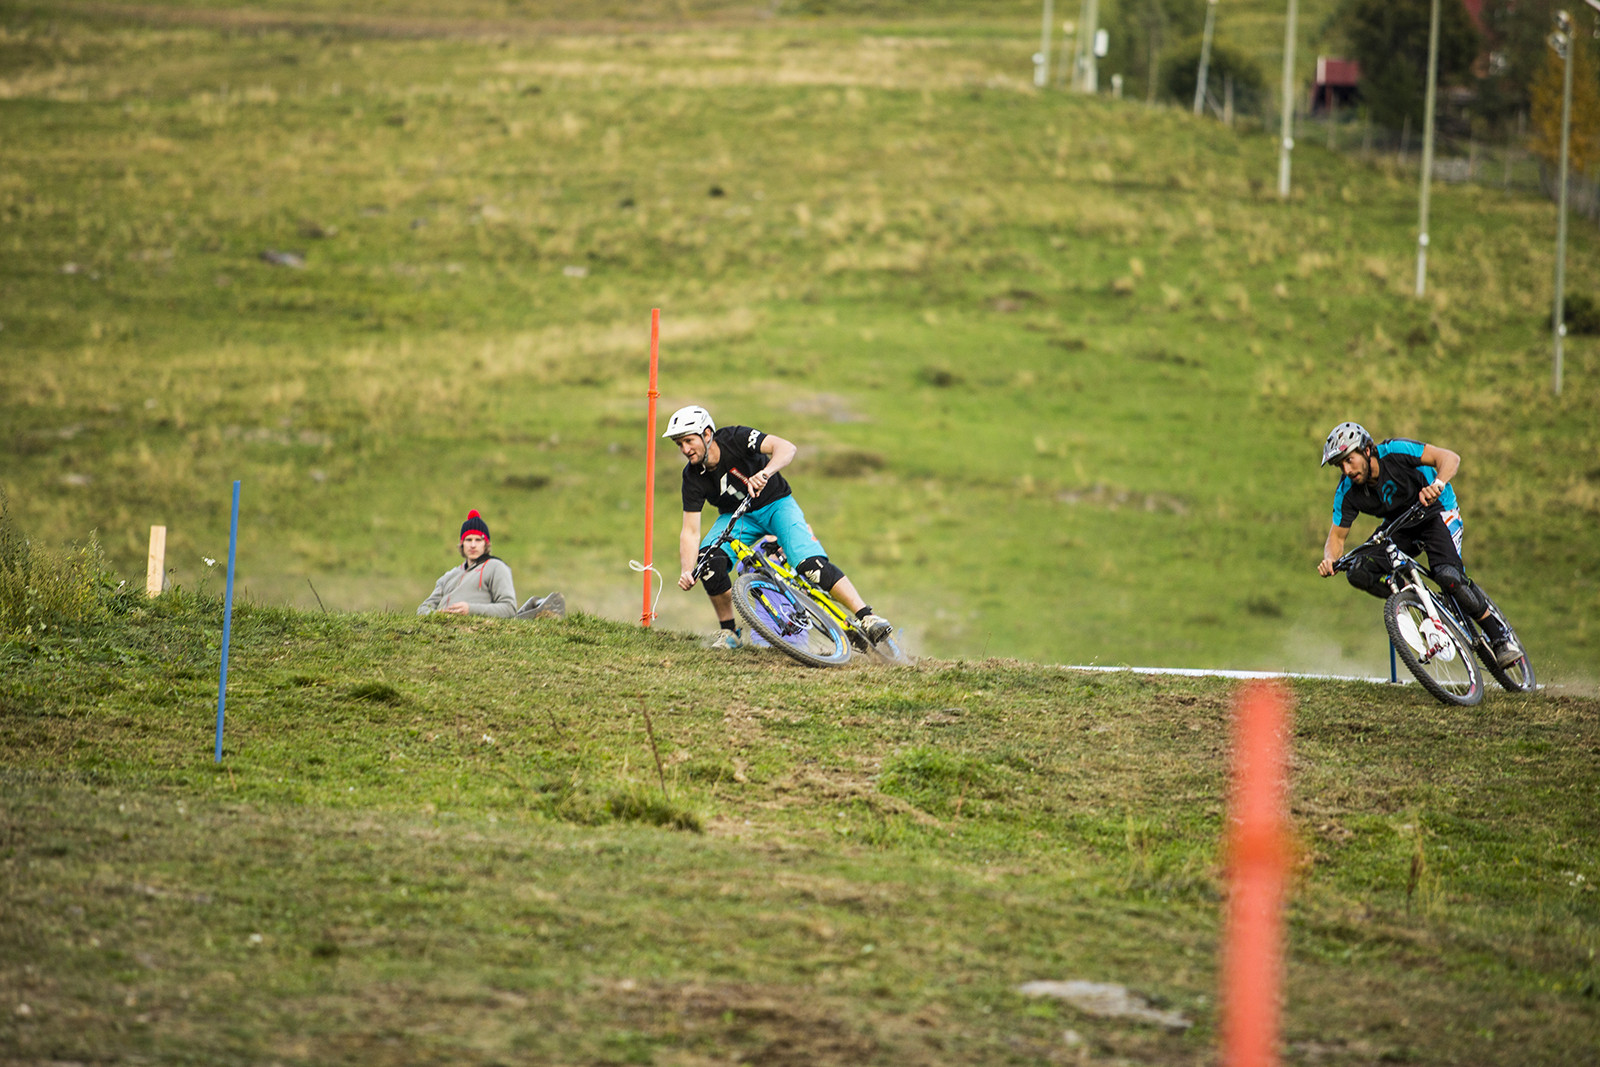 Slalom For Life - Has-Beens vs. Wannabes! Industry World Champs Race at Hafjell - Mountain Biking Pictures - Vital MTB